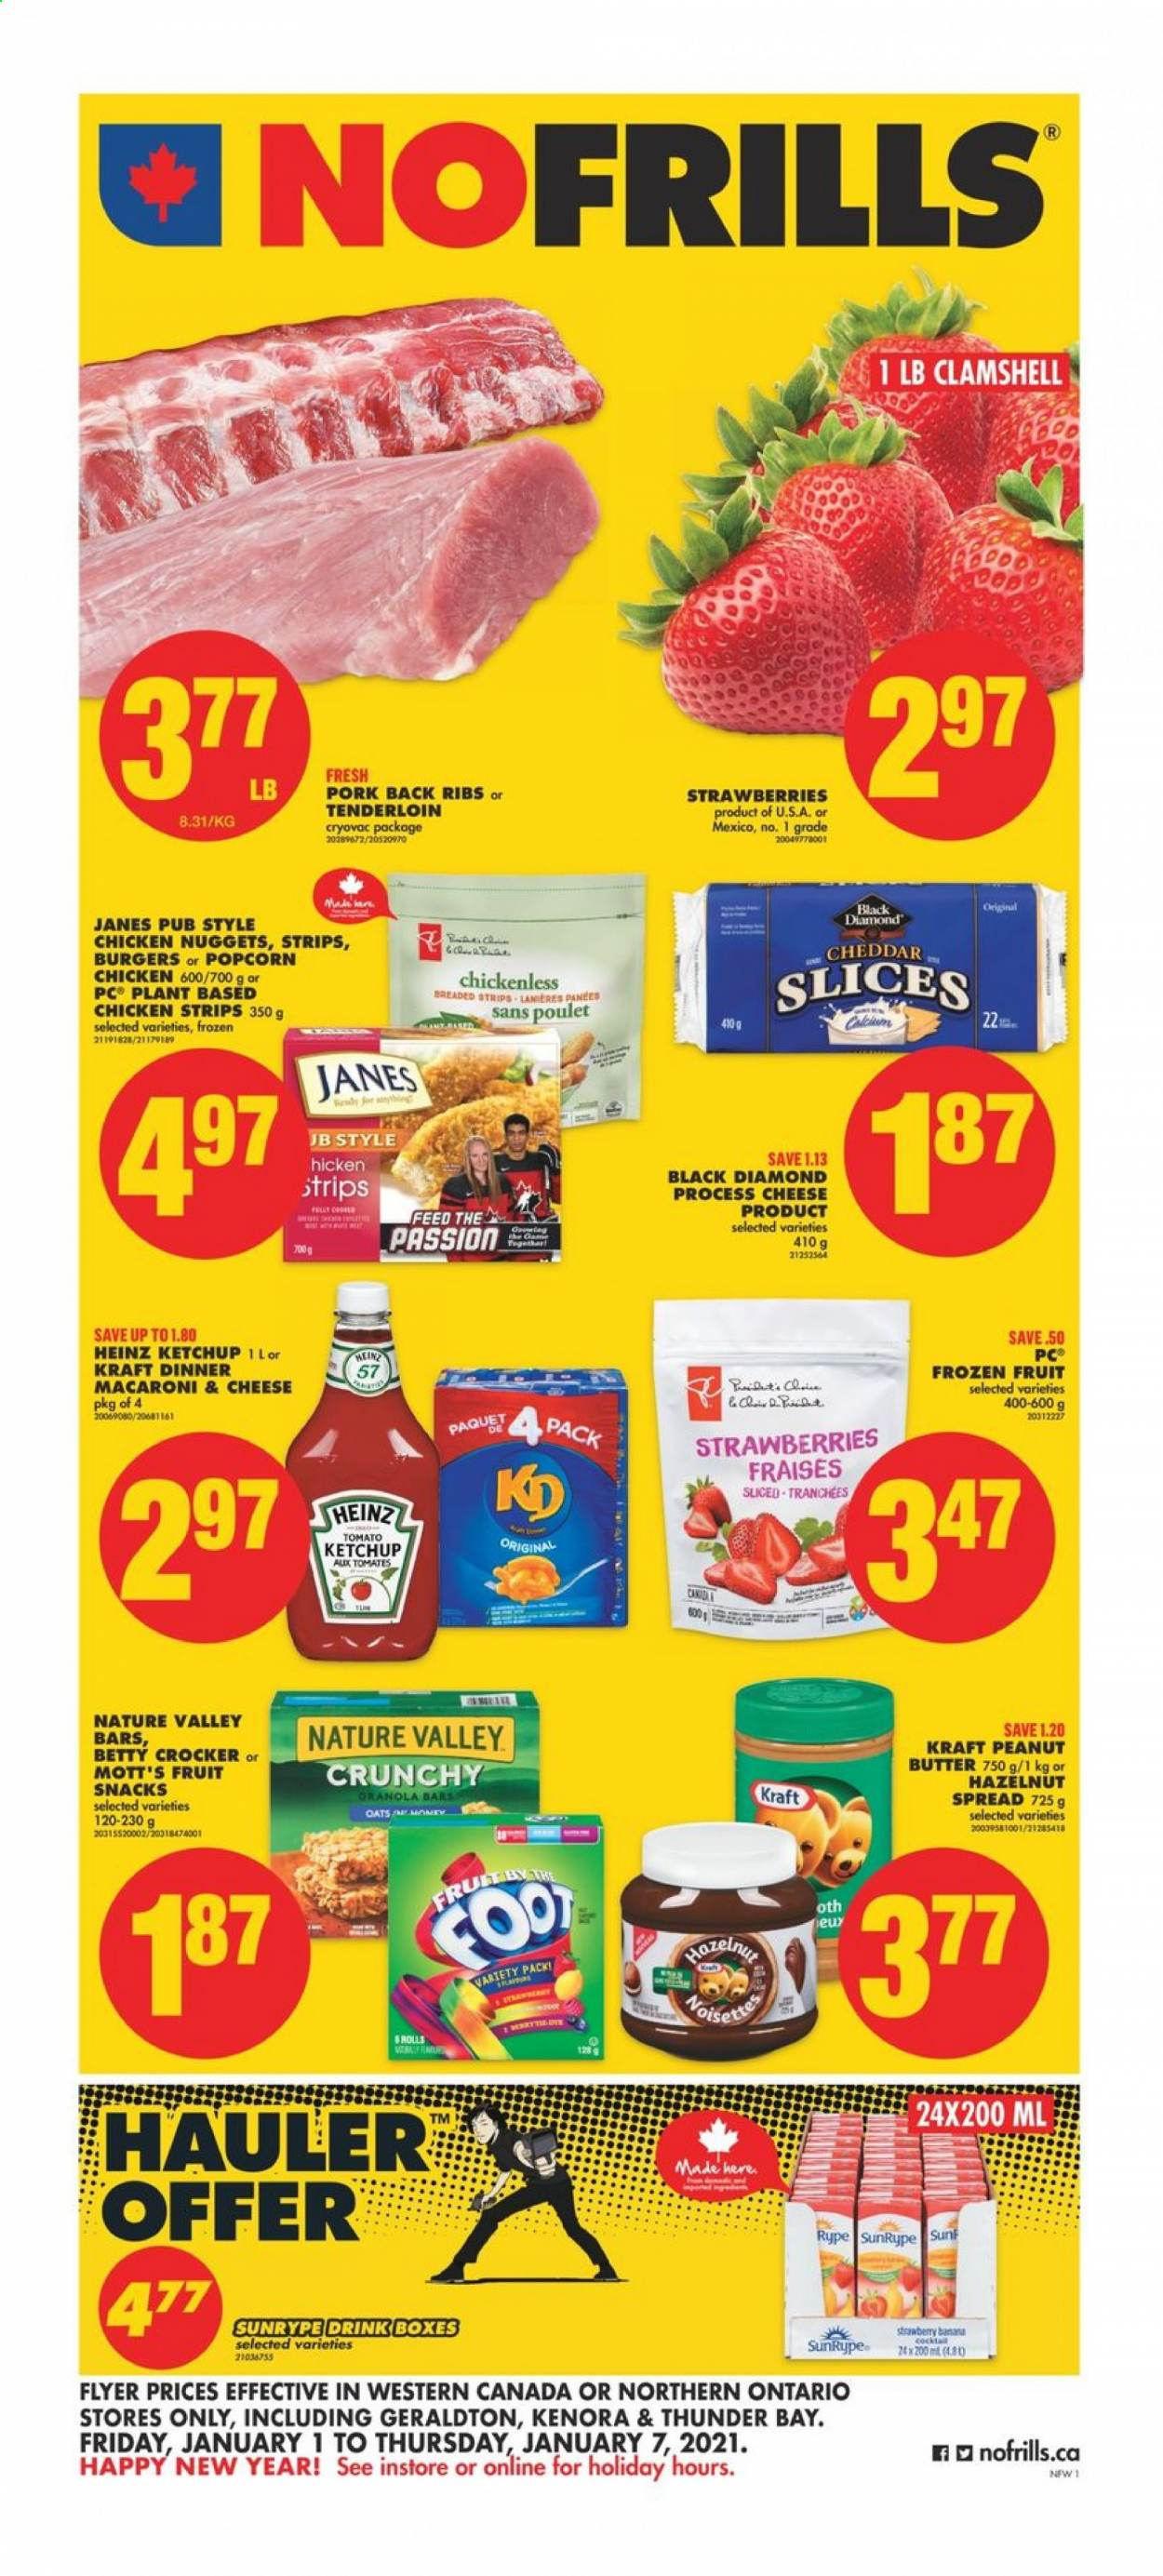 No Frills Flyer - January 01, 2021 - January 07, 2021 - Sales products - butter, frozen, granola, granola bars, macaroni & cheese, strawberries, Heinz, honey, ketchup, pork meat, cheddar, chicken, peanut butter, peanuts, oats, cheese, macaroni, snack, nuggets, ribs, box, burger. Page 1.